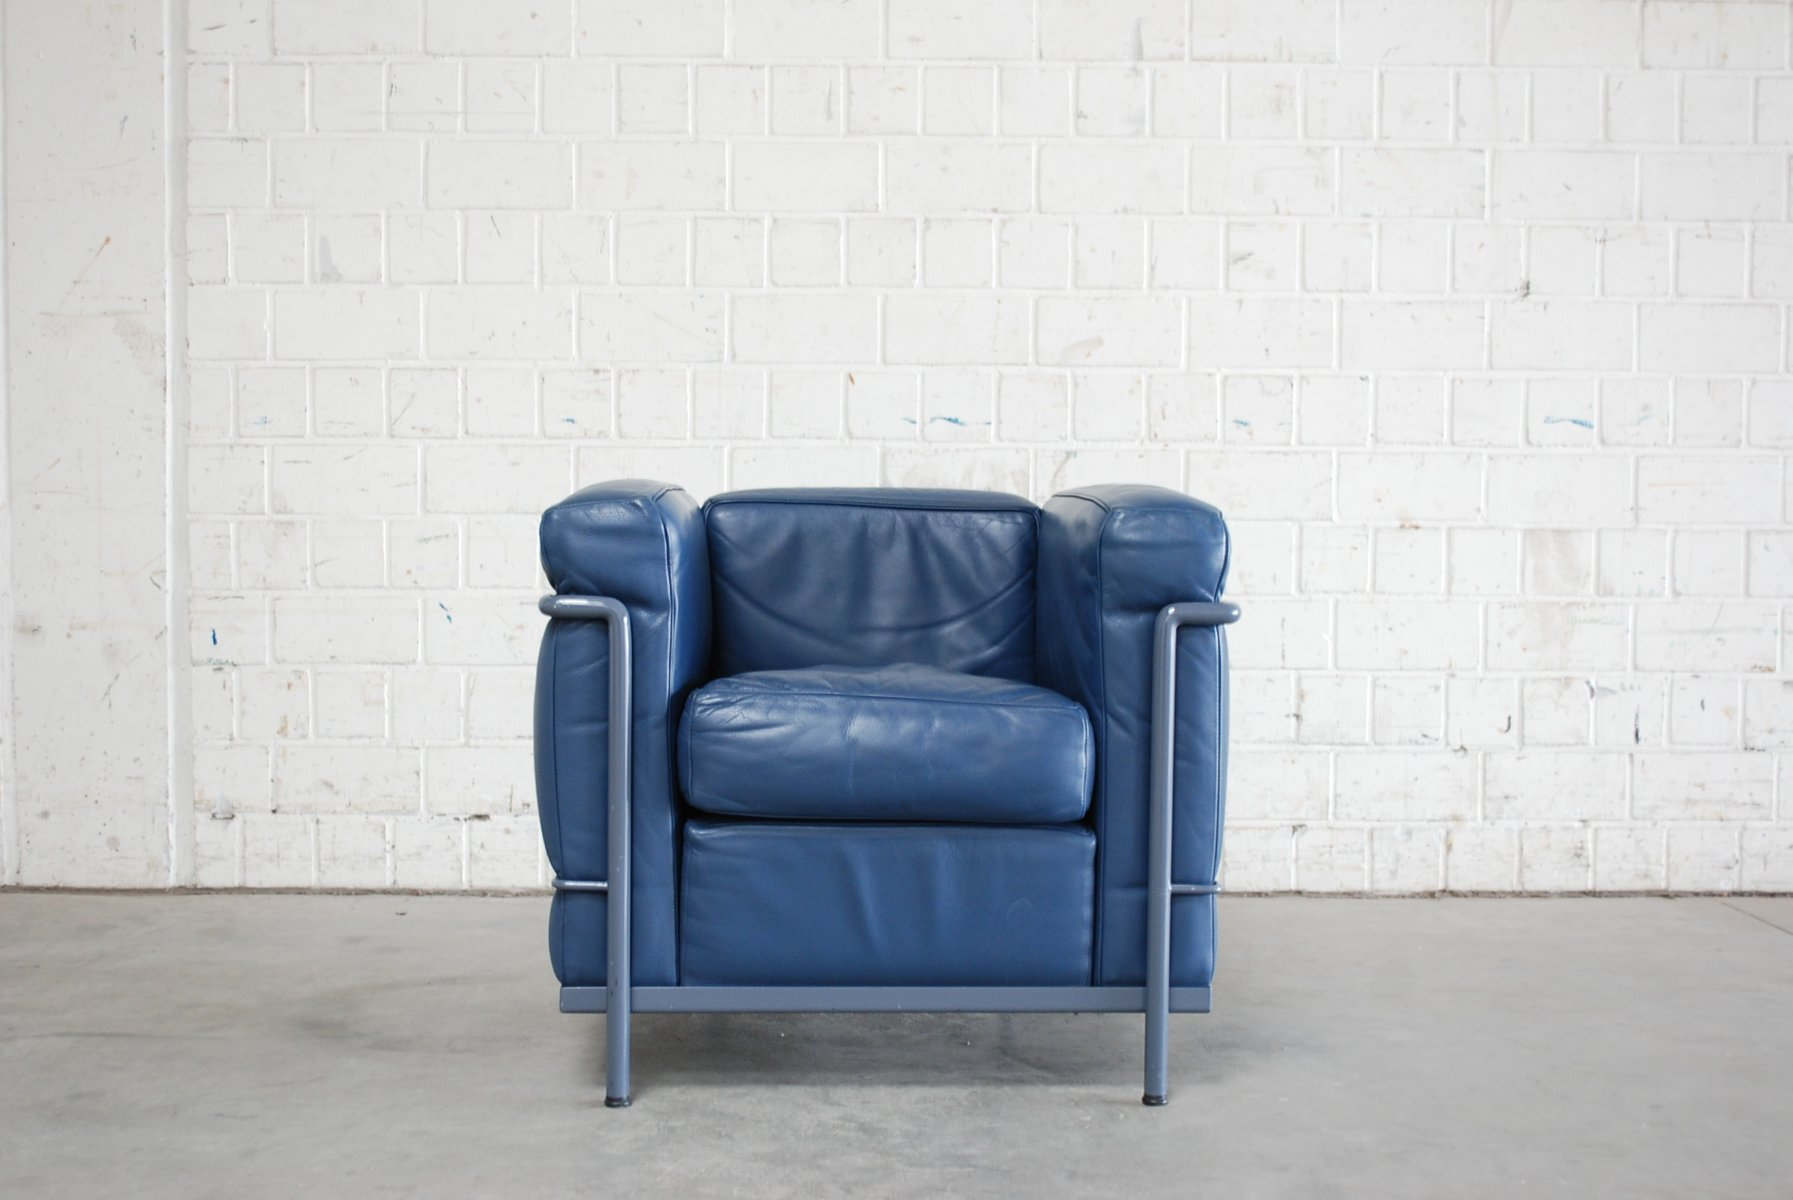 Superieur Vintage Blue Model LC2 Leather Chair By Le Corbusier For Cassina